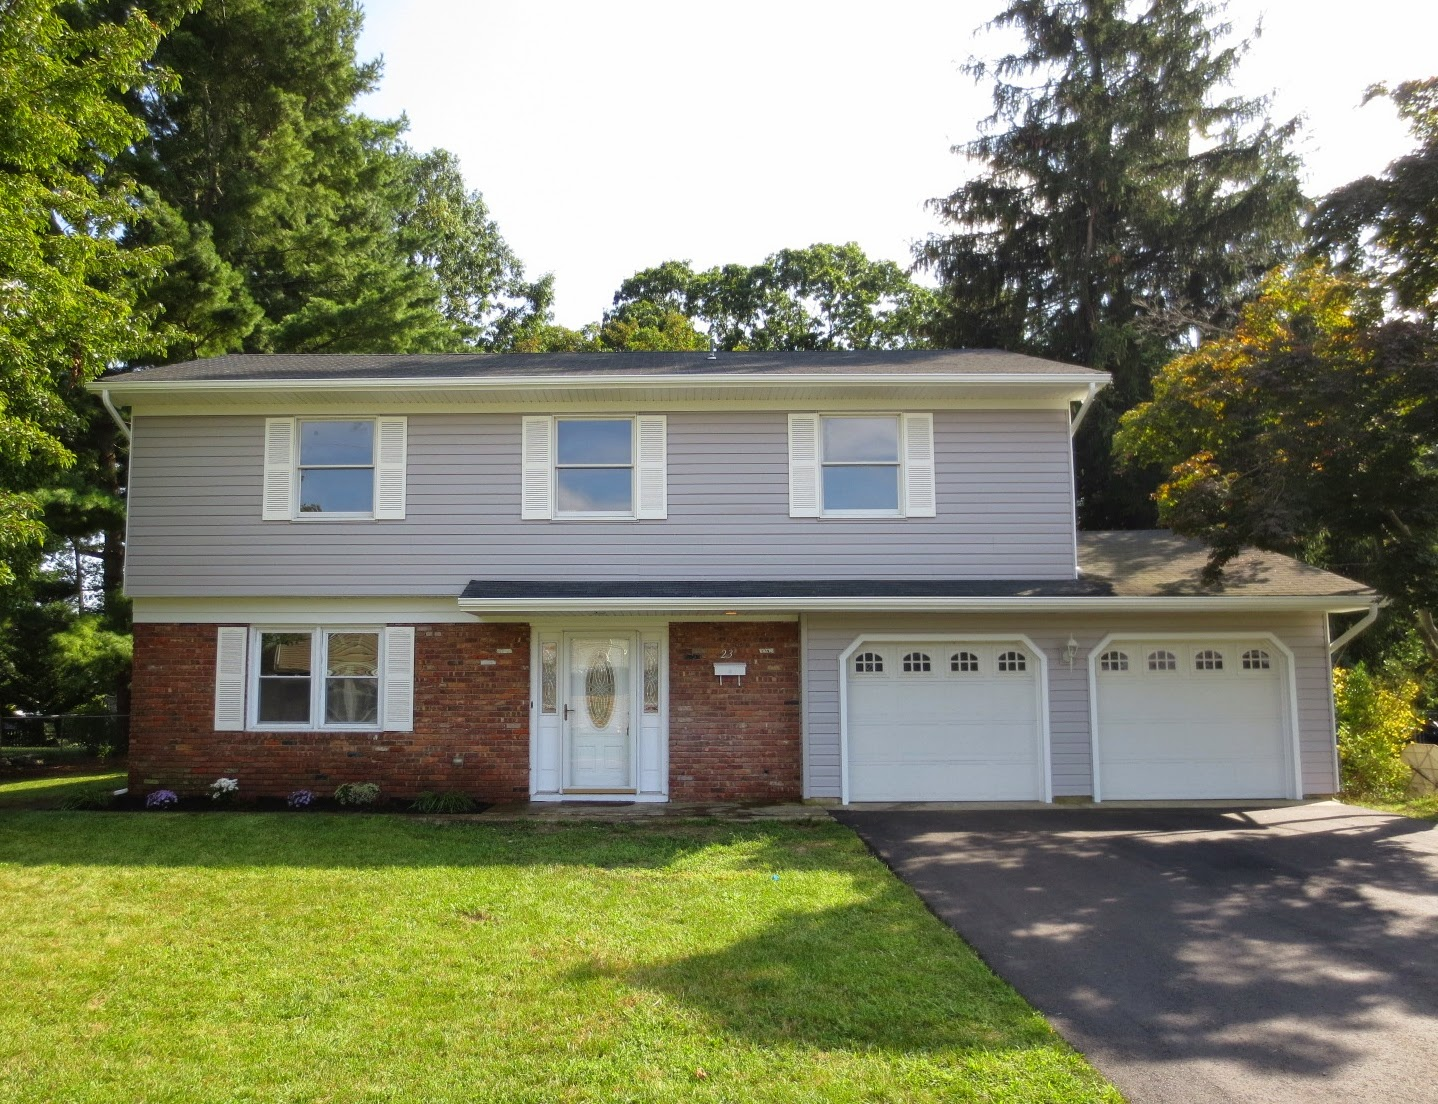 Howell NJ Candlewood Home for Sale